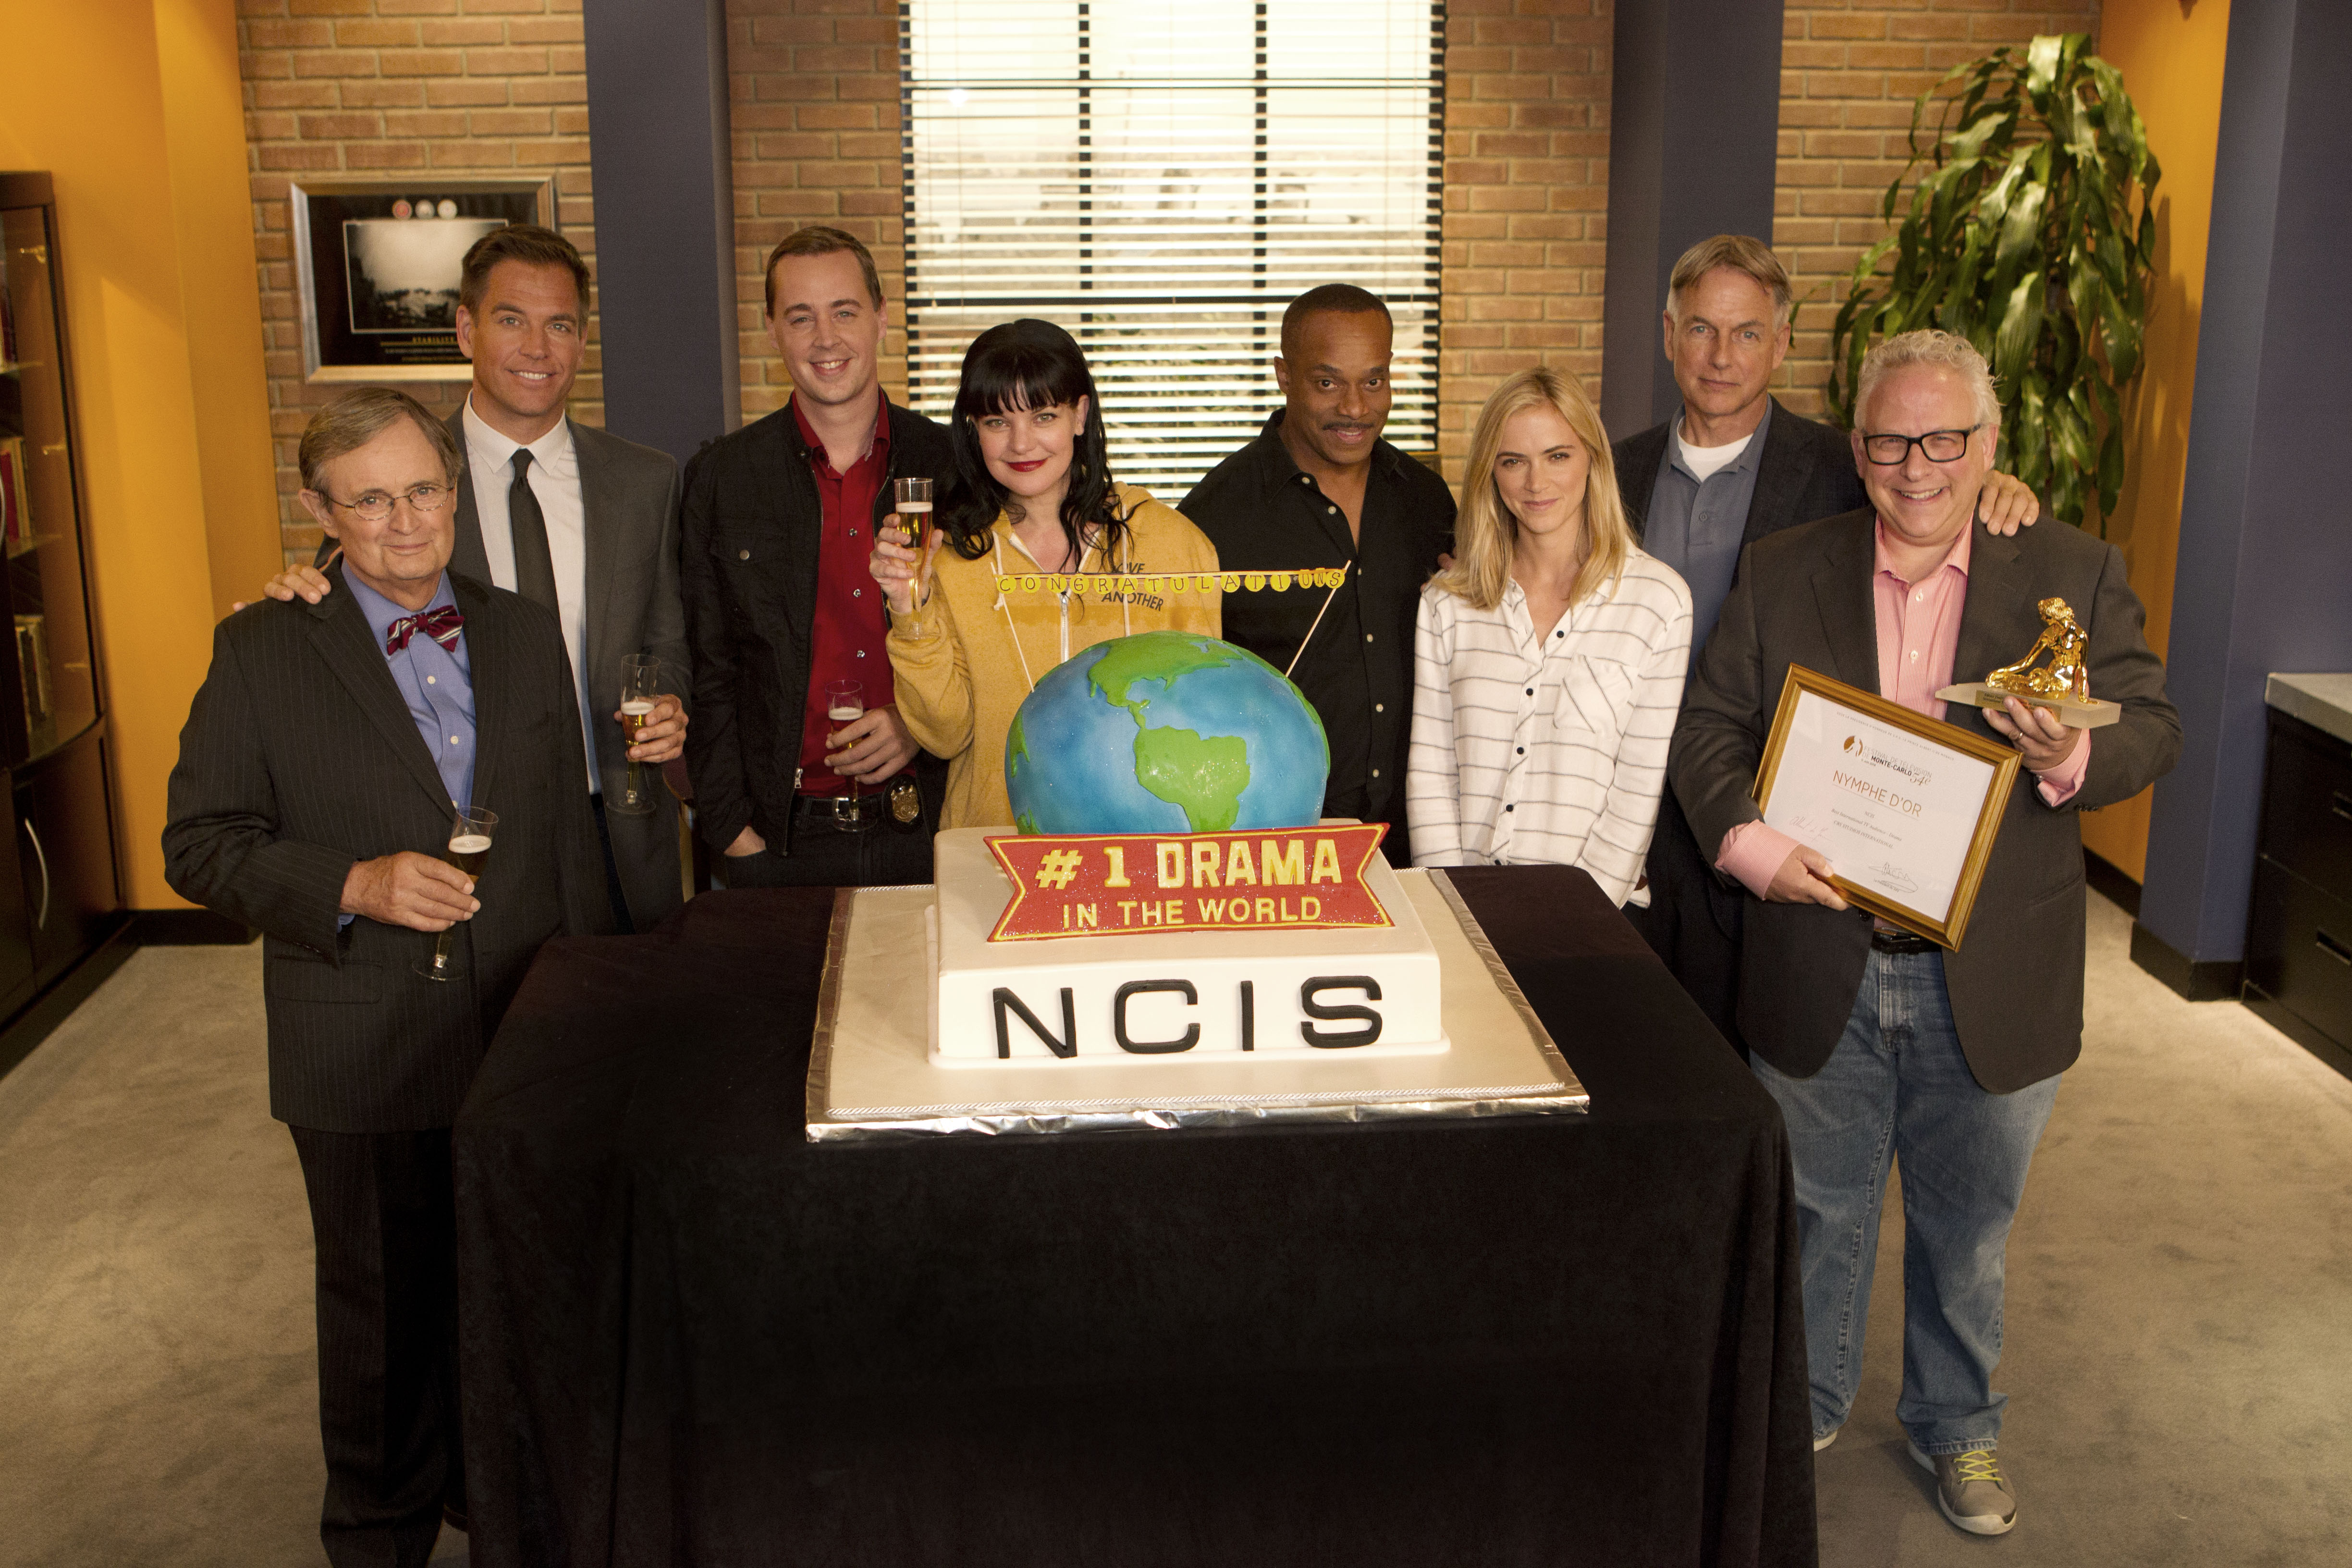 The Cast of NCIS